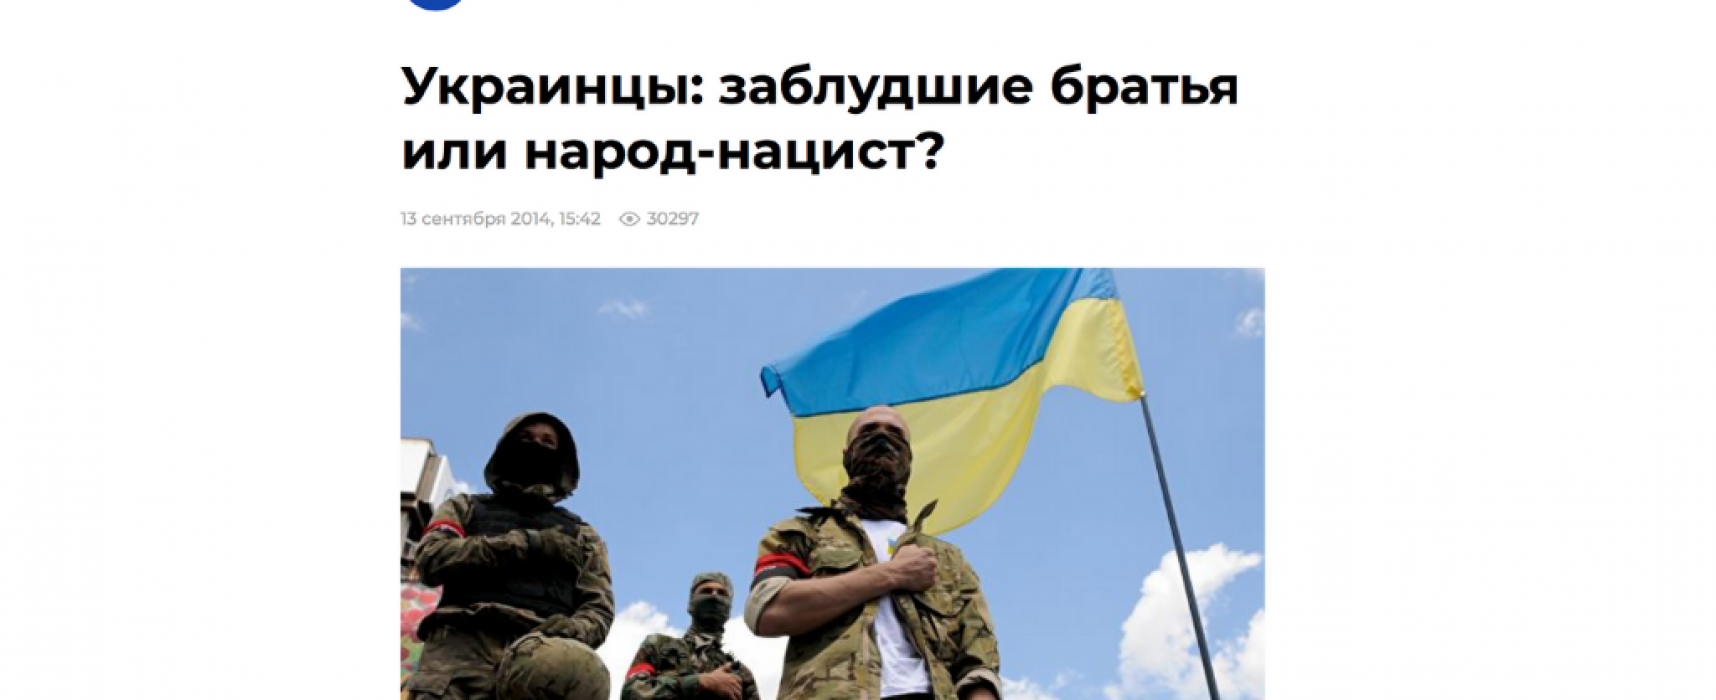 How big is the Kremlin's obsession with Ukraine? Spoiler: very big